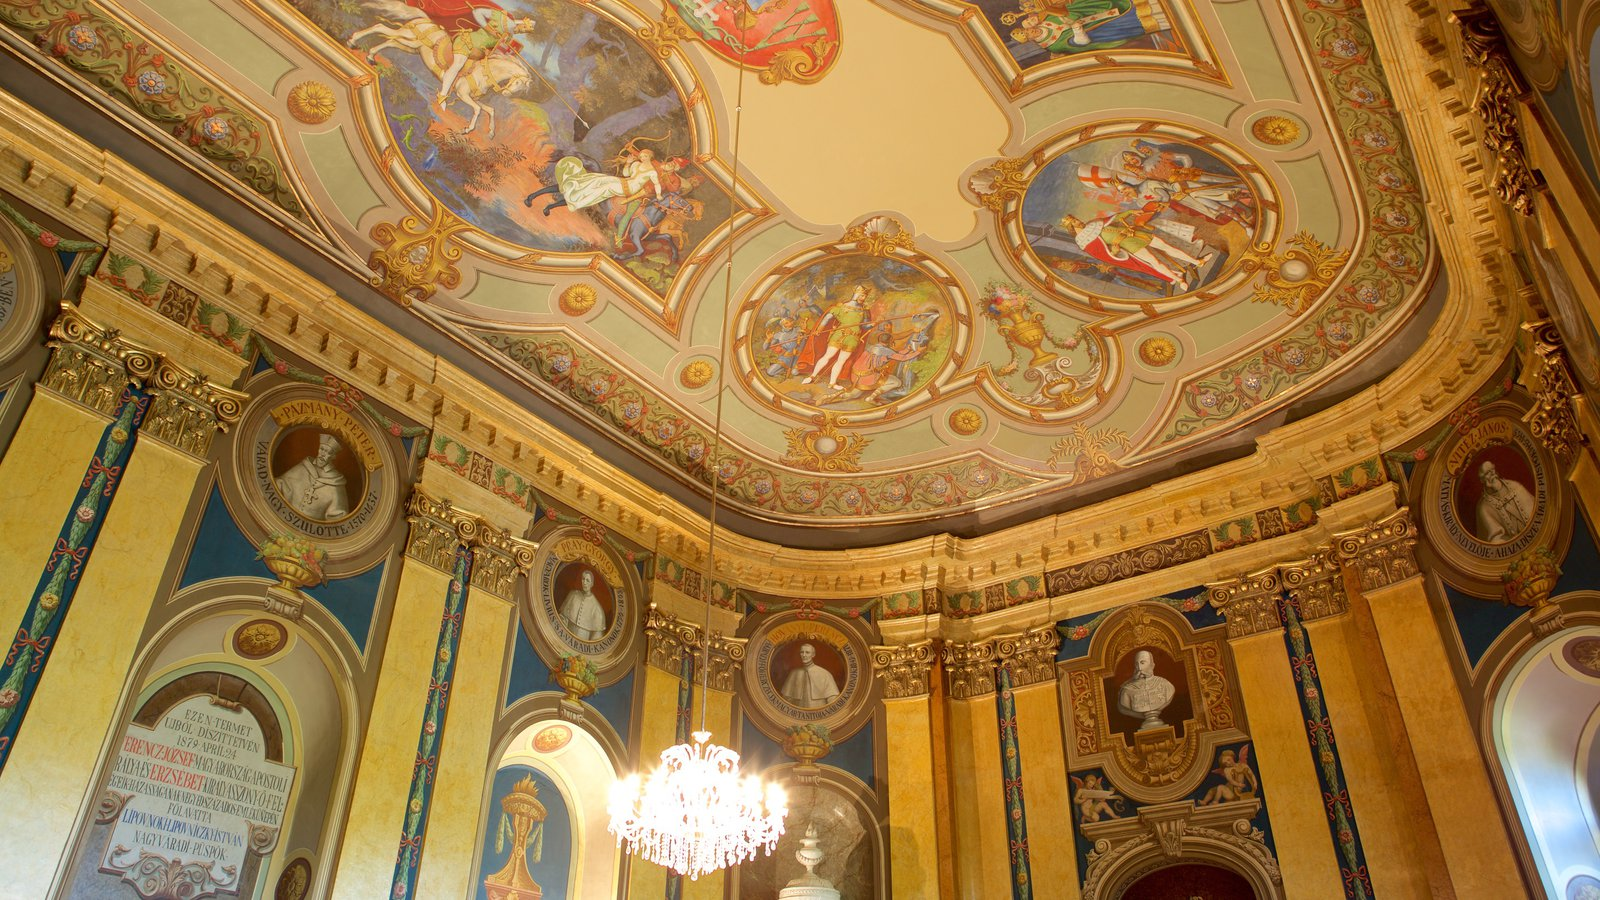 baroque palace pictures: view photos & images of baroque palace